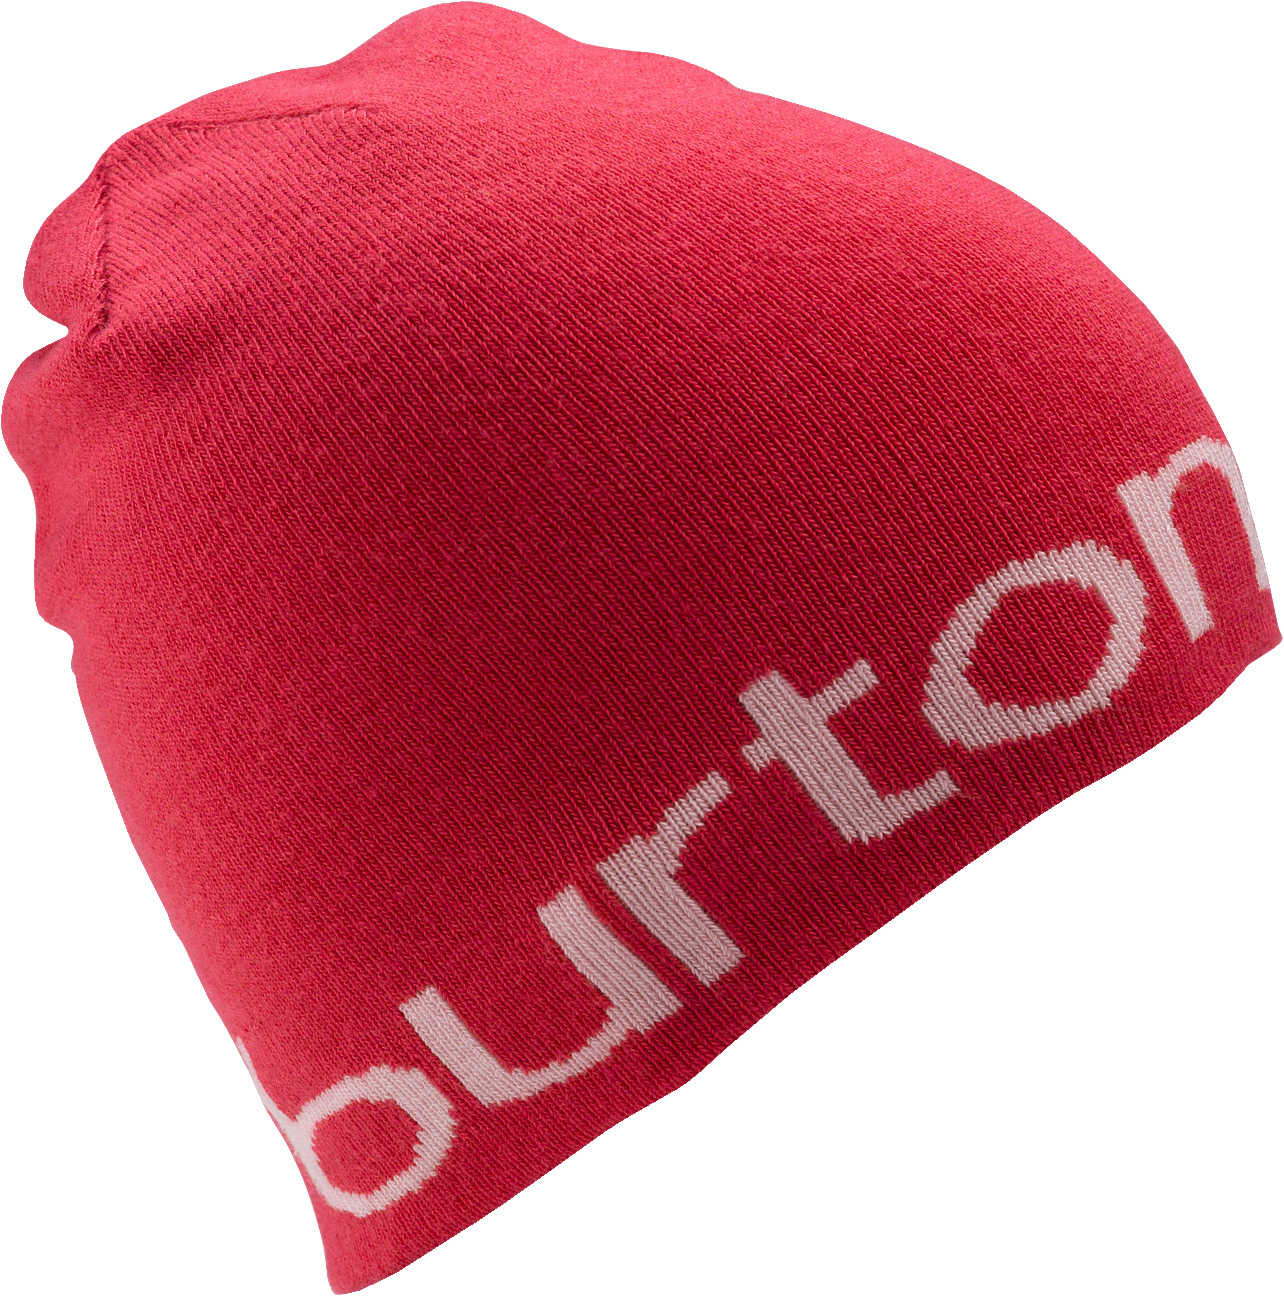 Snowboard Key Features of the Burton Up On Lights Beanie: 100% Acrylic Reversible Word Mark Beanie Skully Fit - $15.95